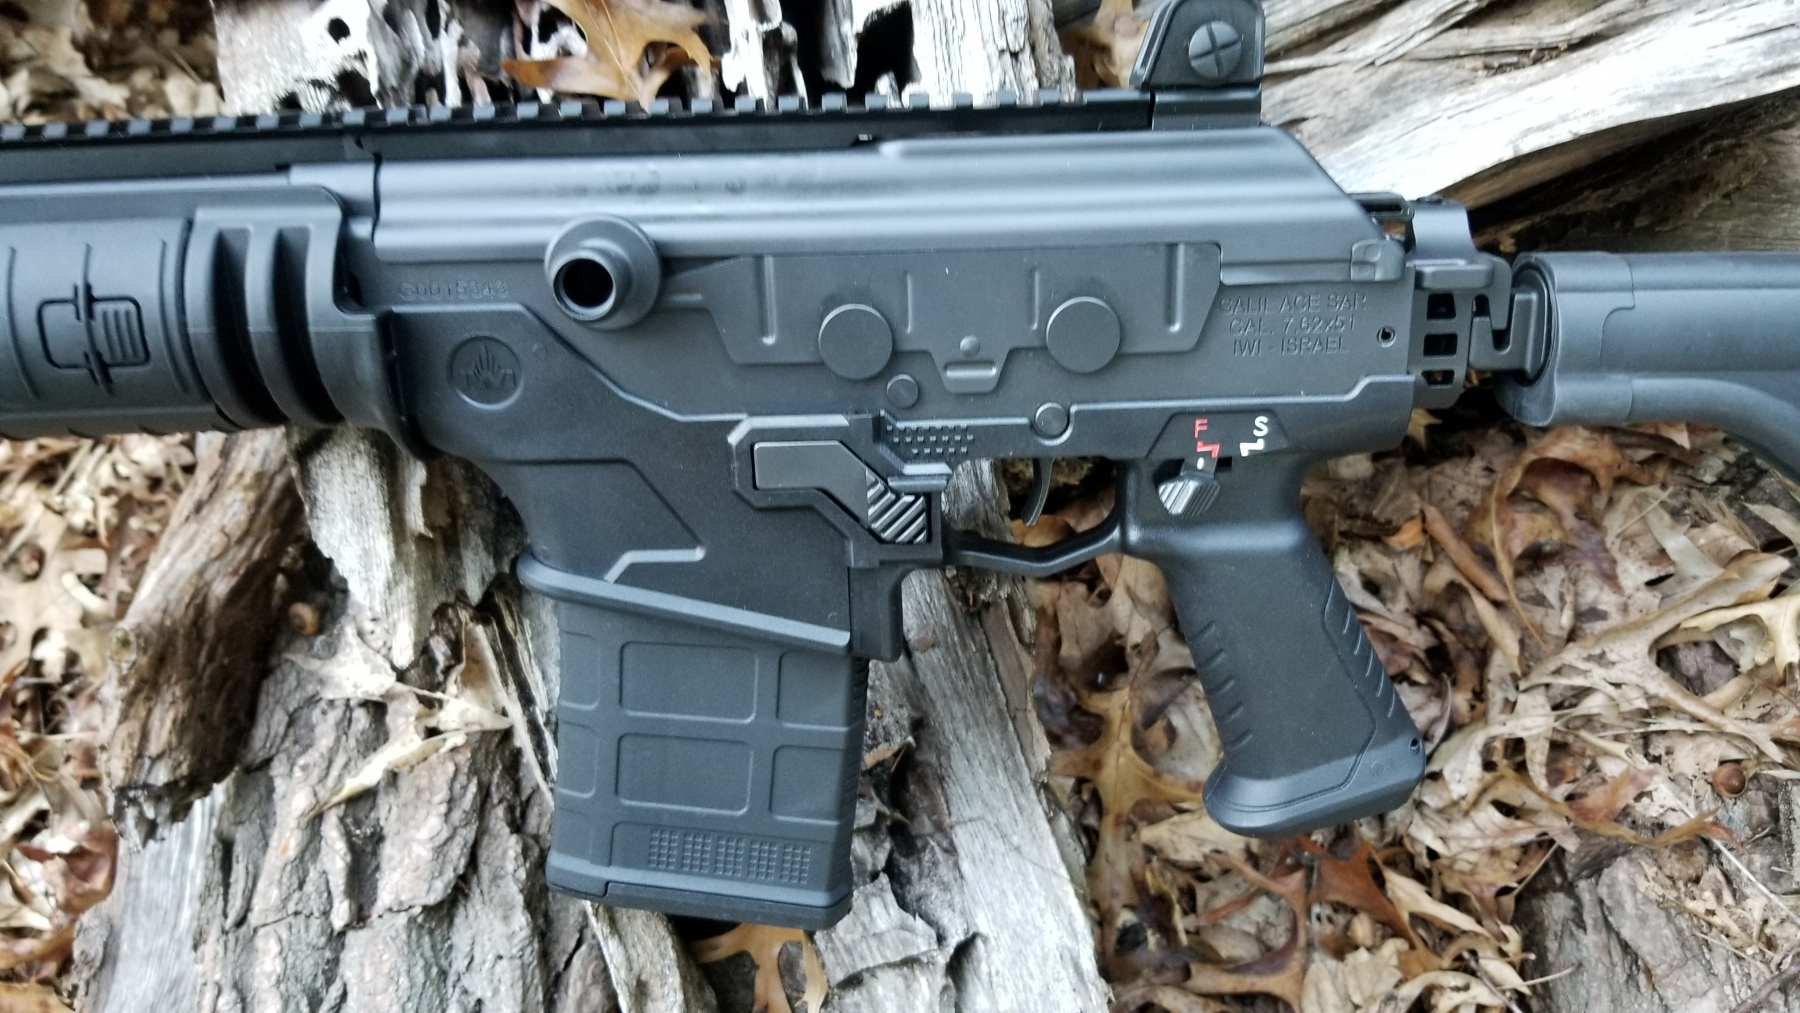 View of charging handle and shutter system that seals the receiveer's track.